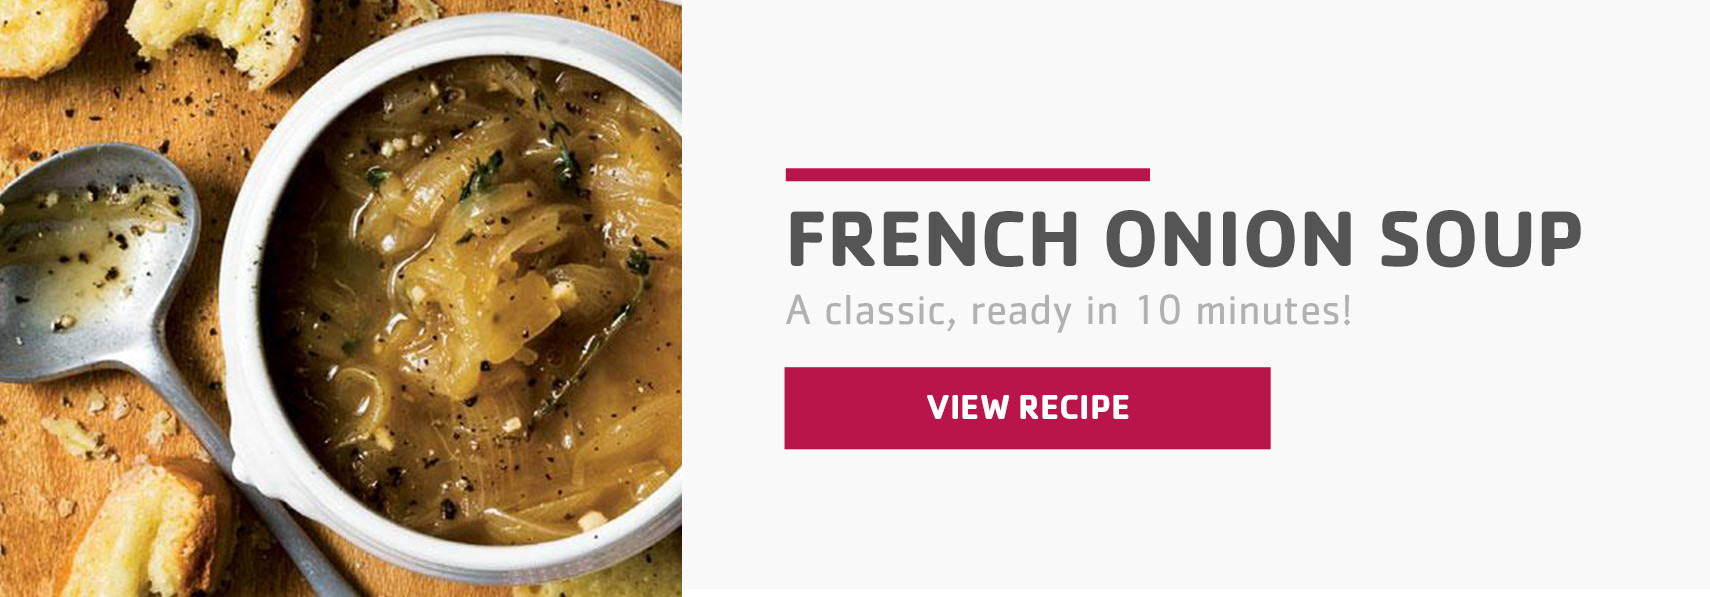 French onion soup recipe listing page banner.jpg